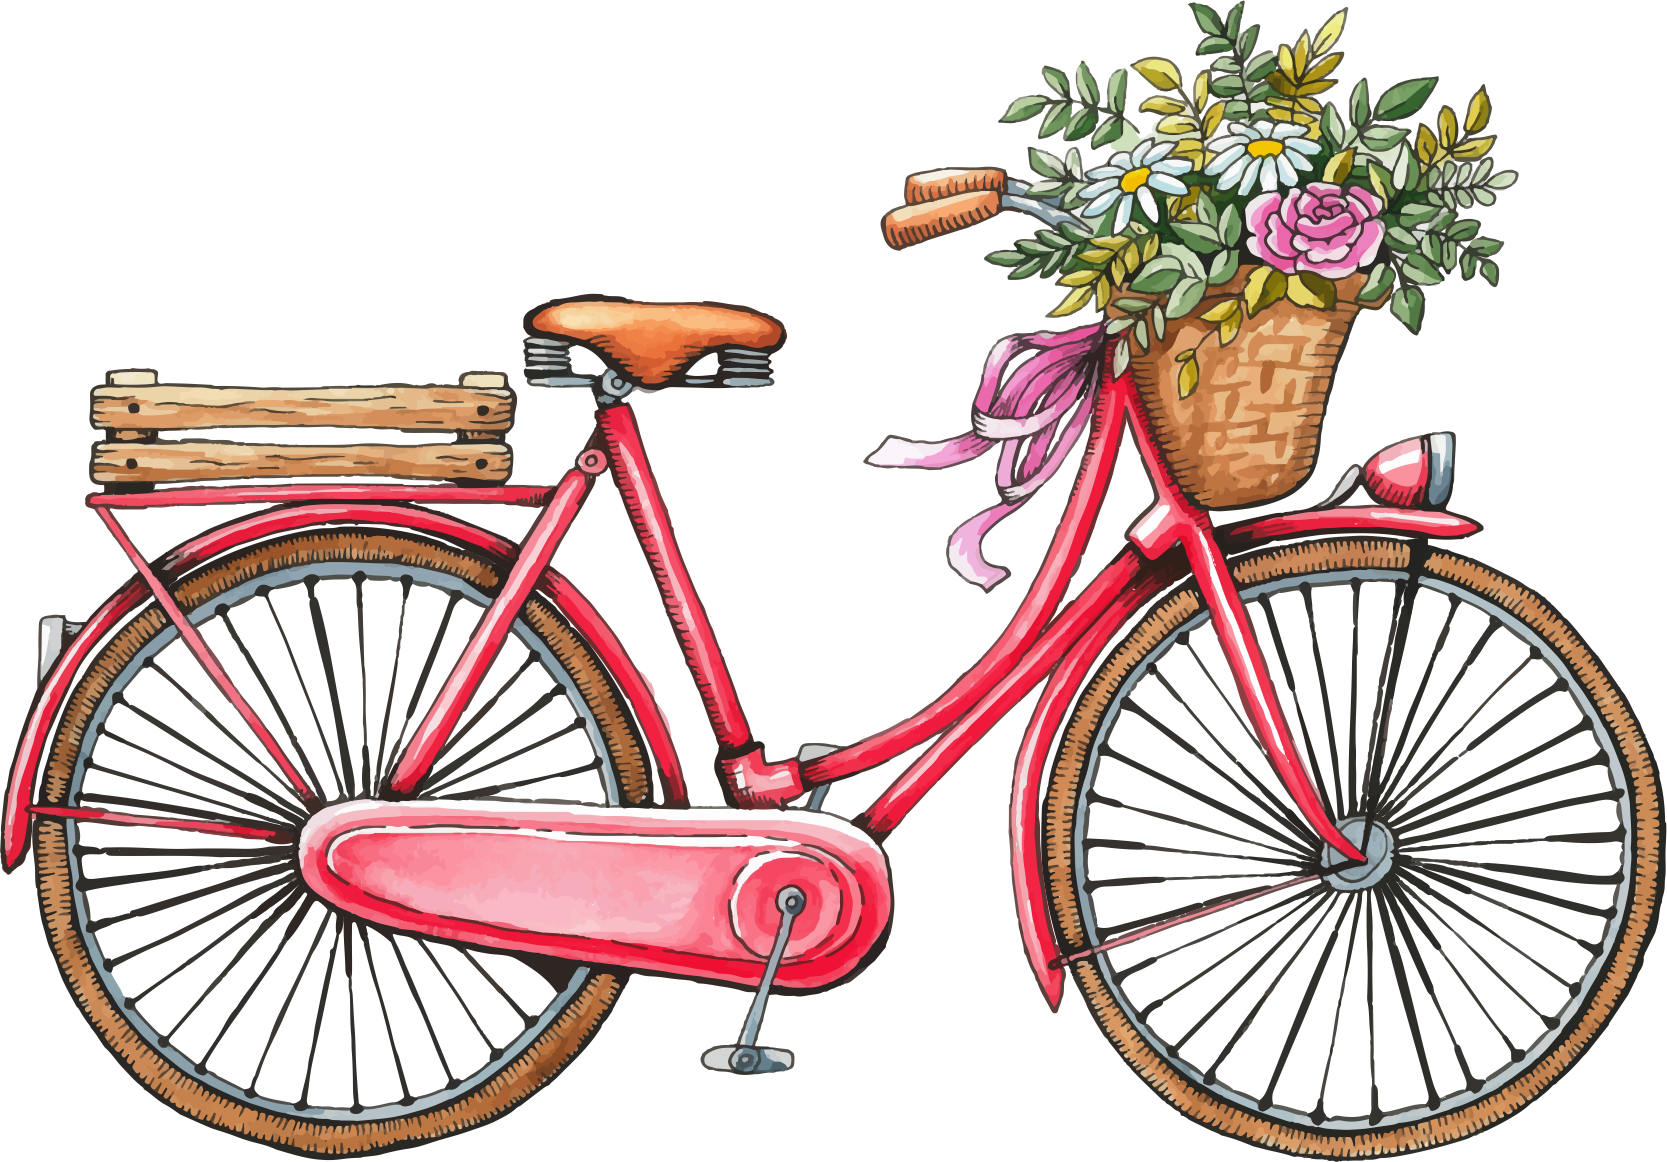 Old Bicycle Png - Bicycle Wedding invitation Save the date Watercolor painting ...